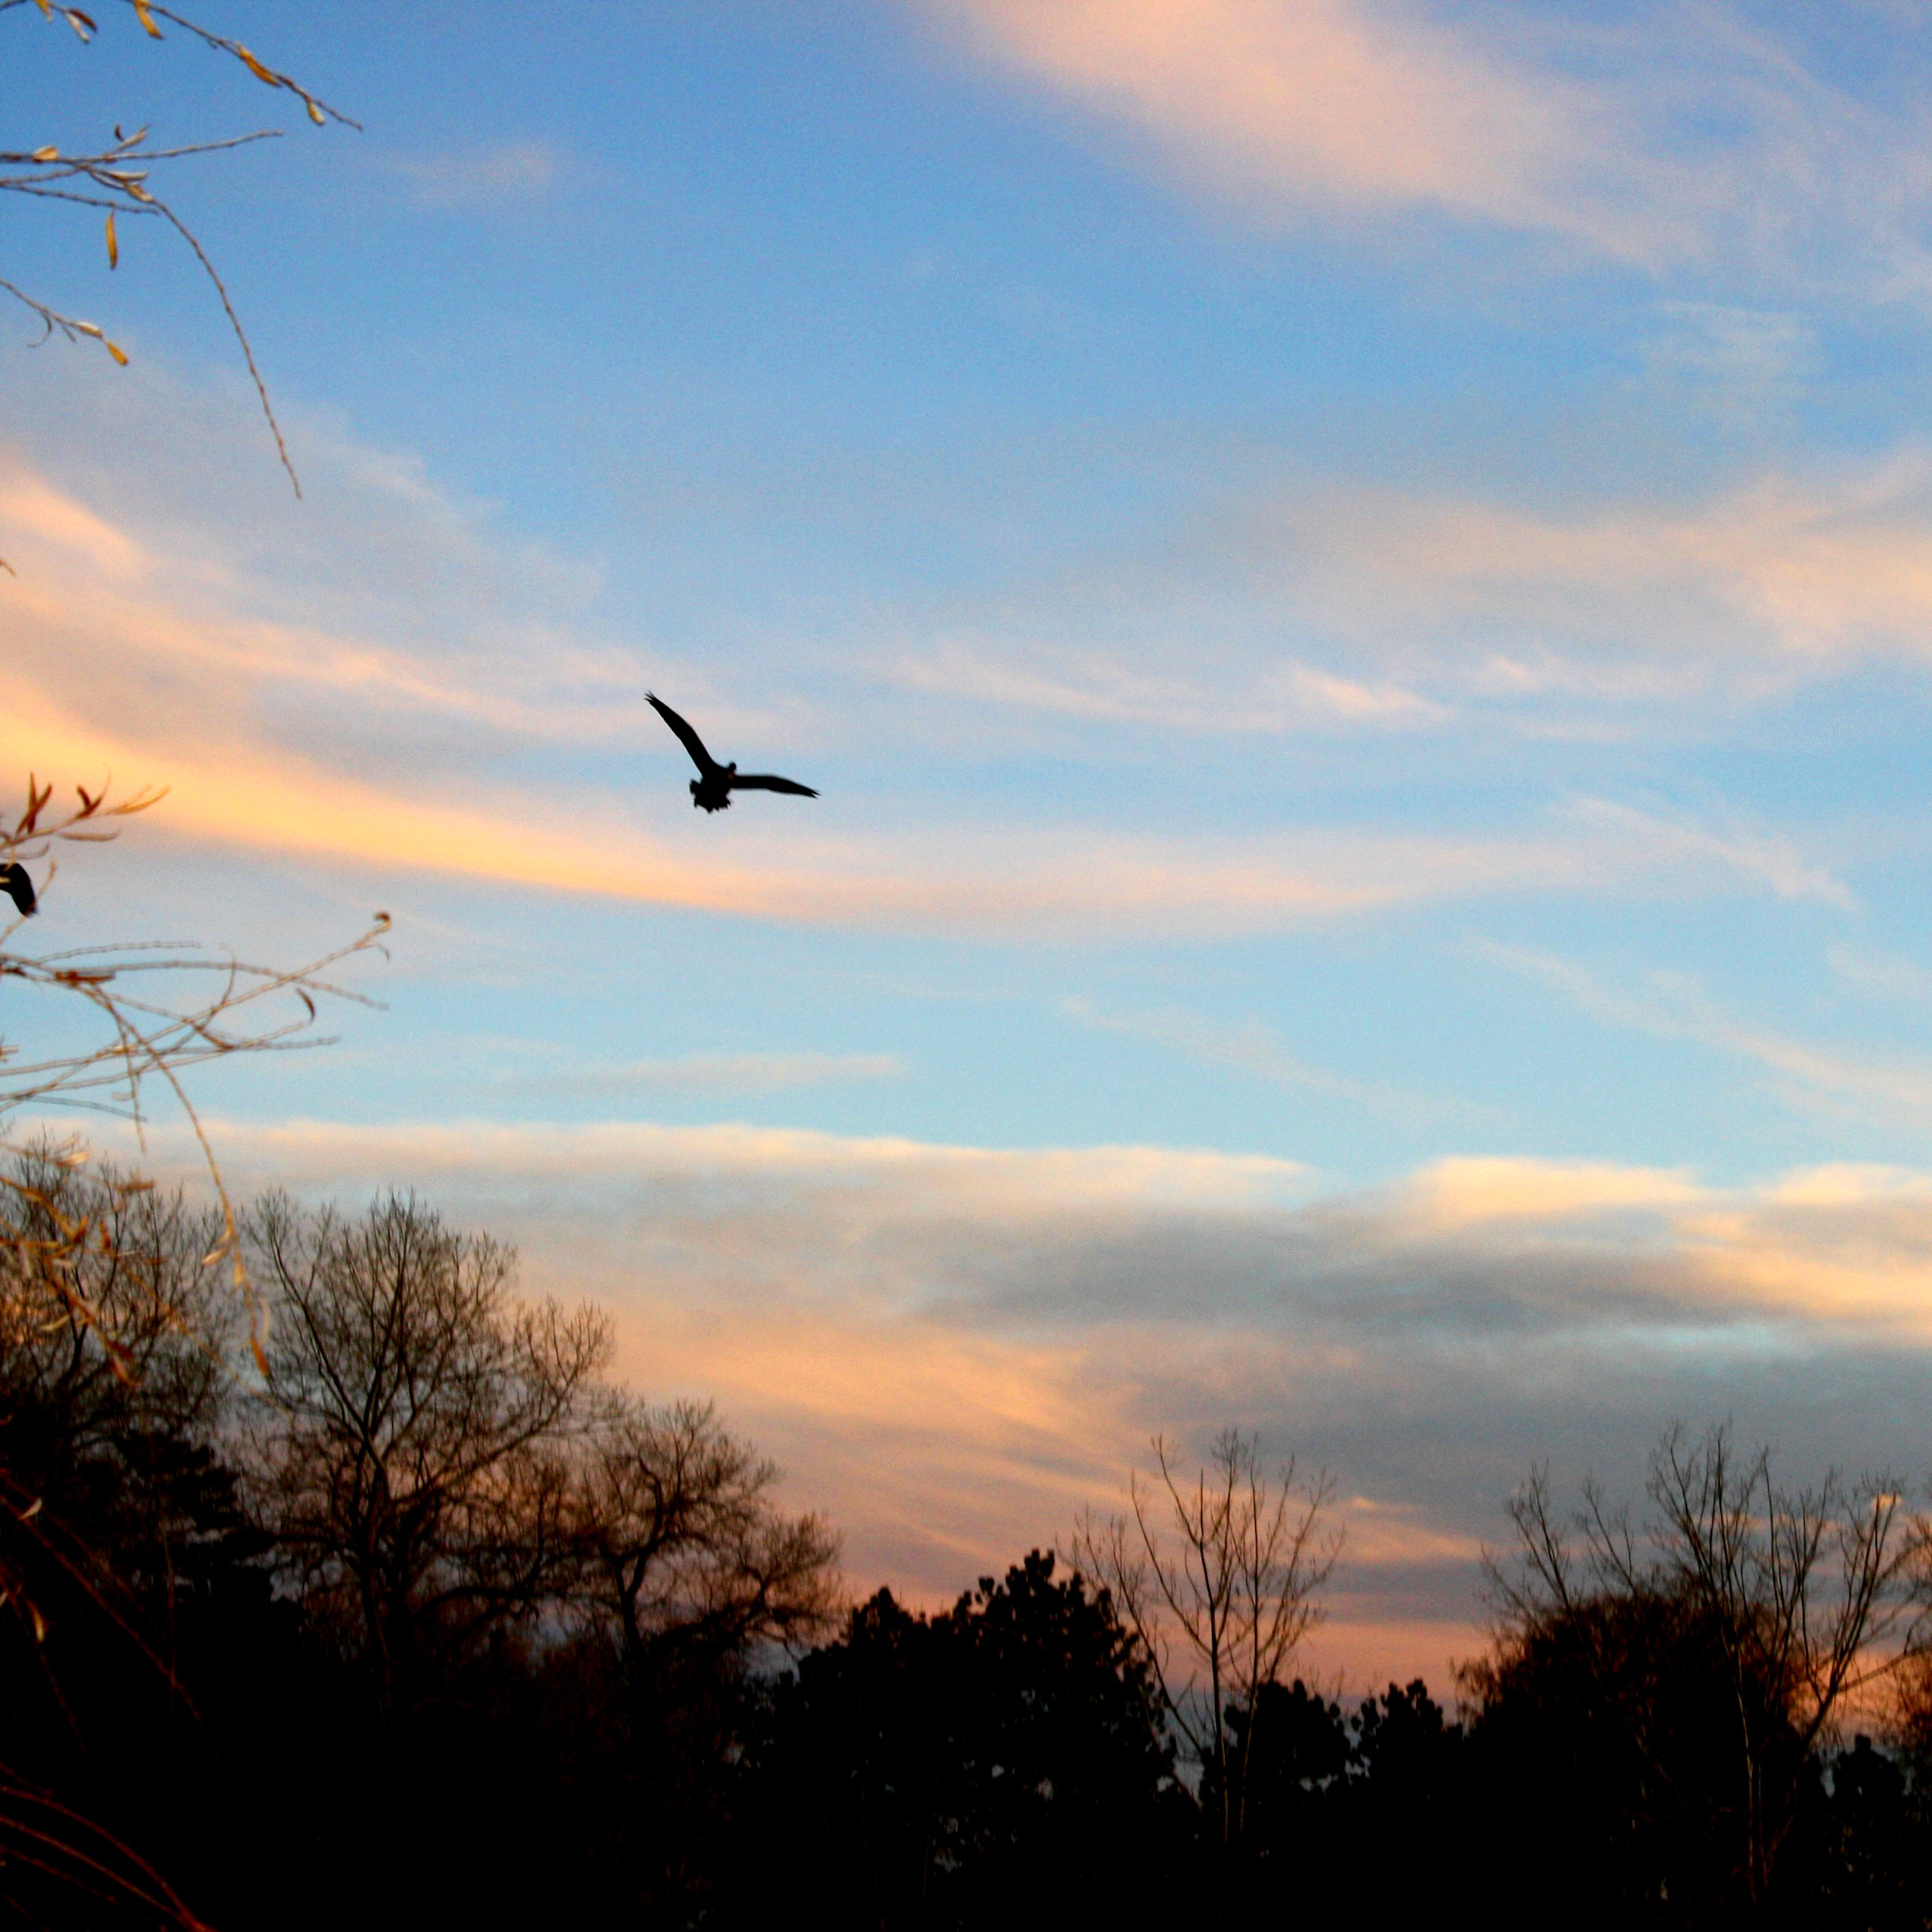 Flying Bird At Sunset